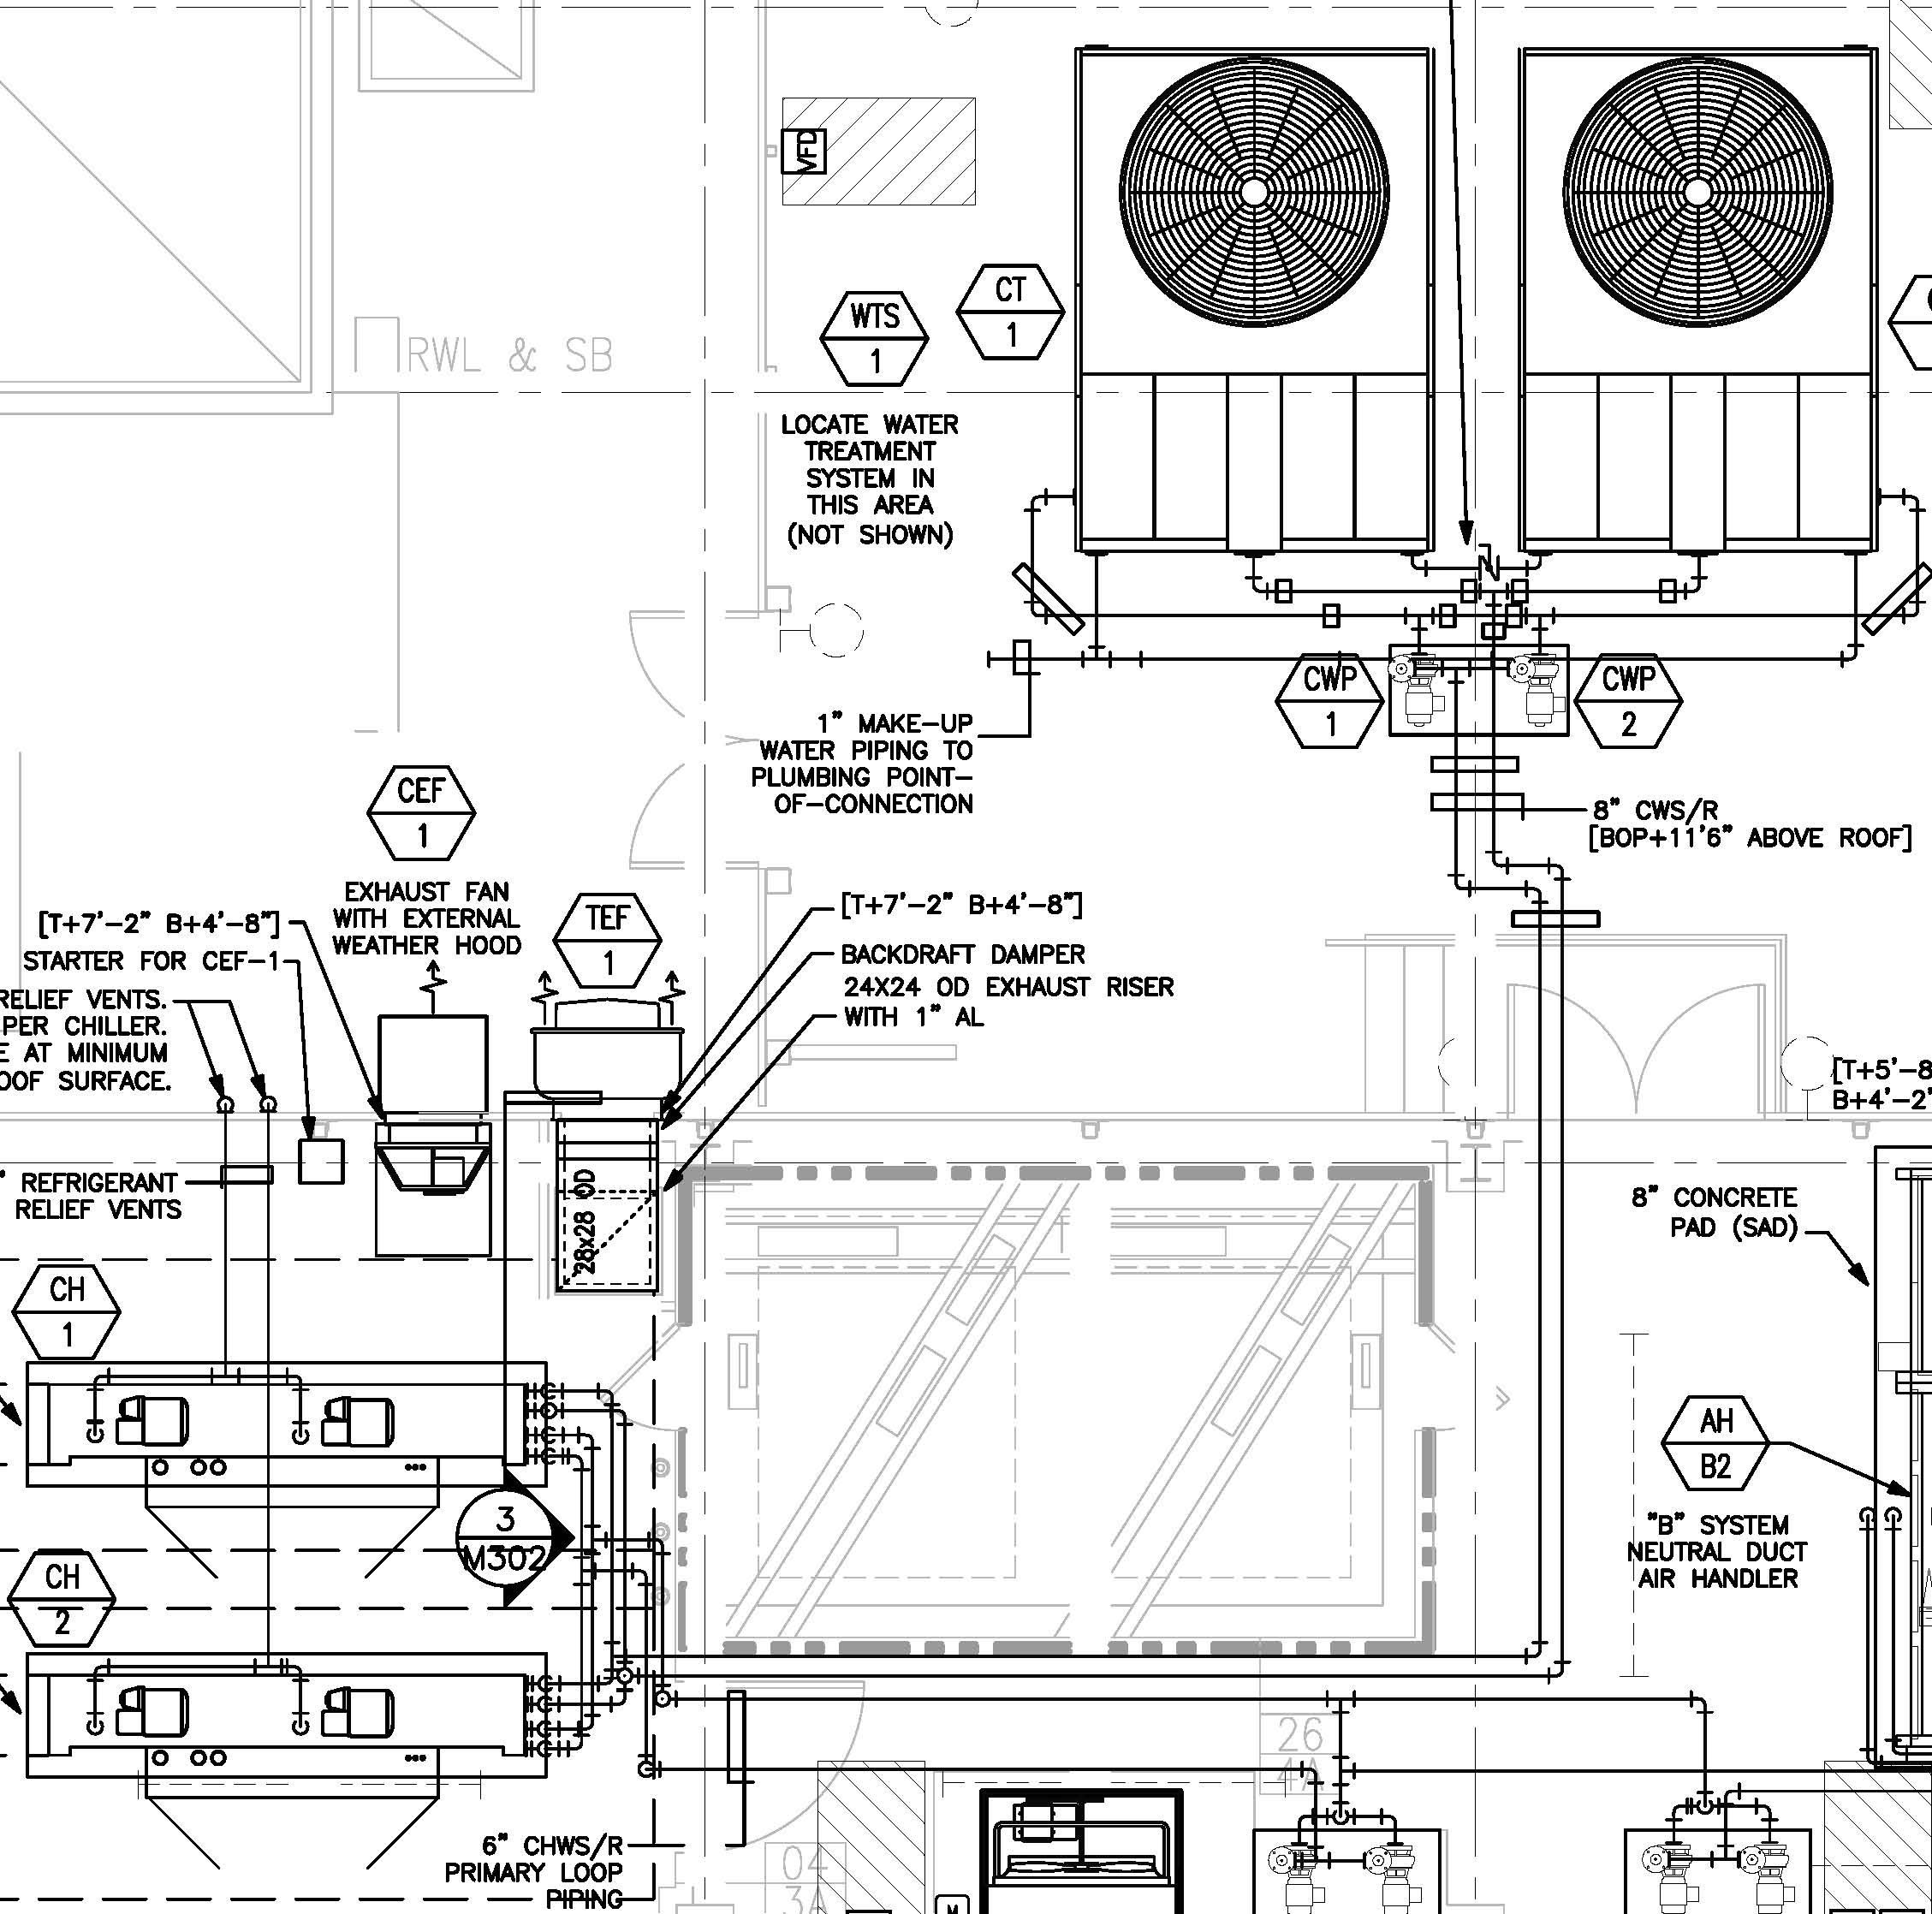 First Company Air Handler Wiring Diagram